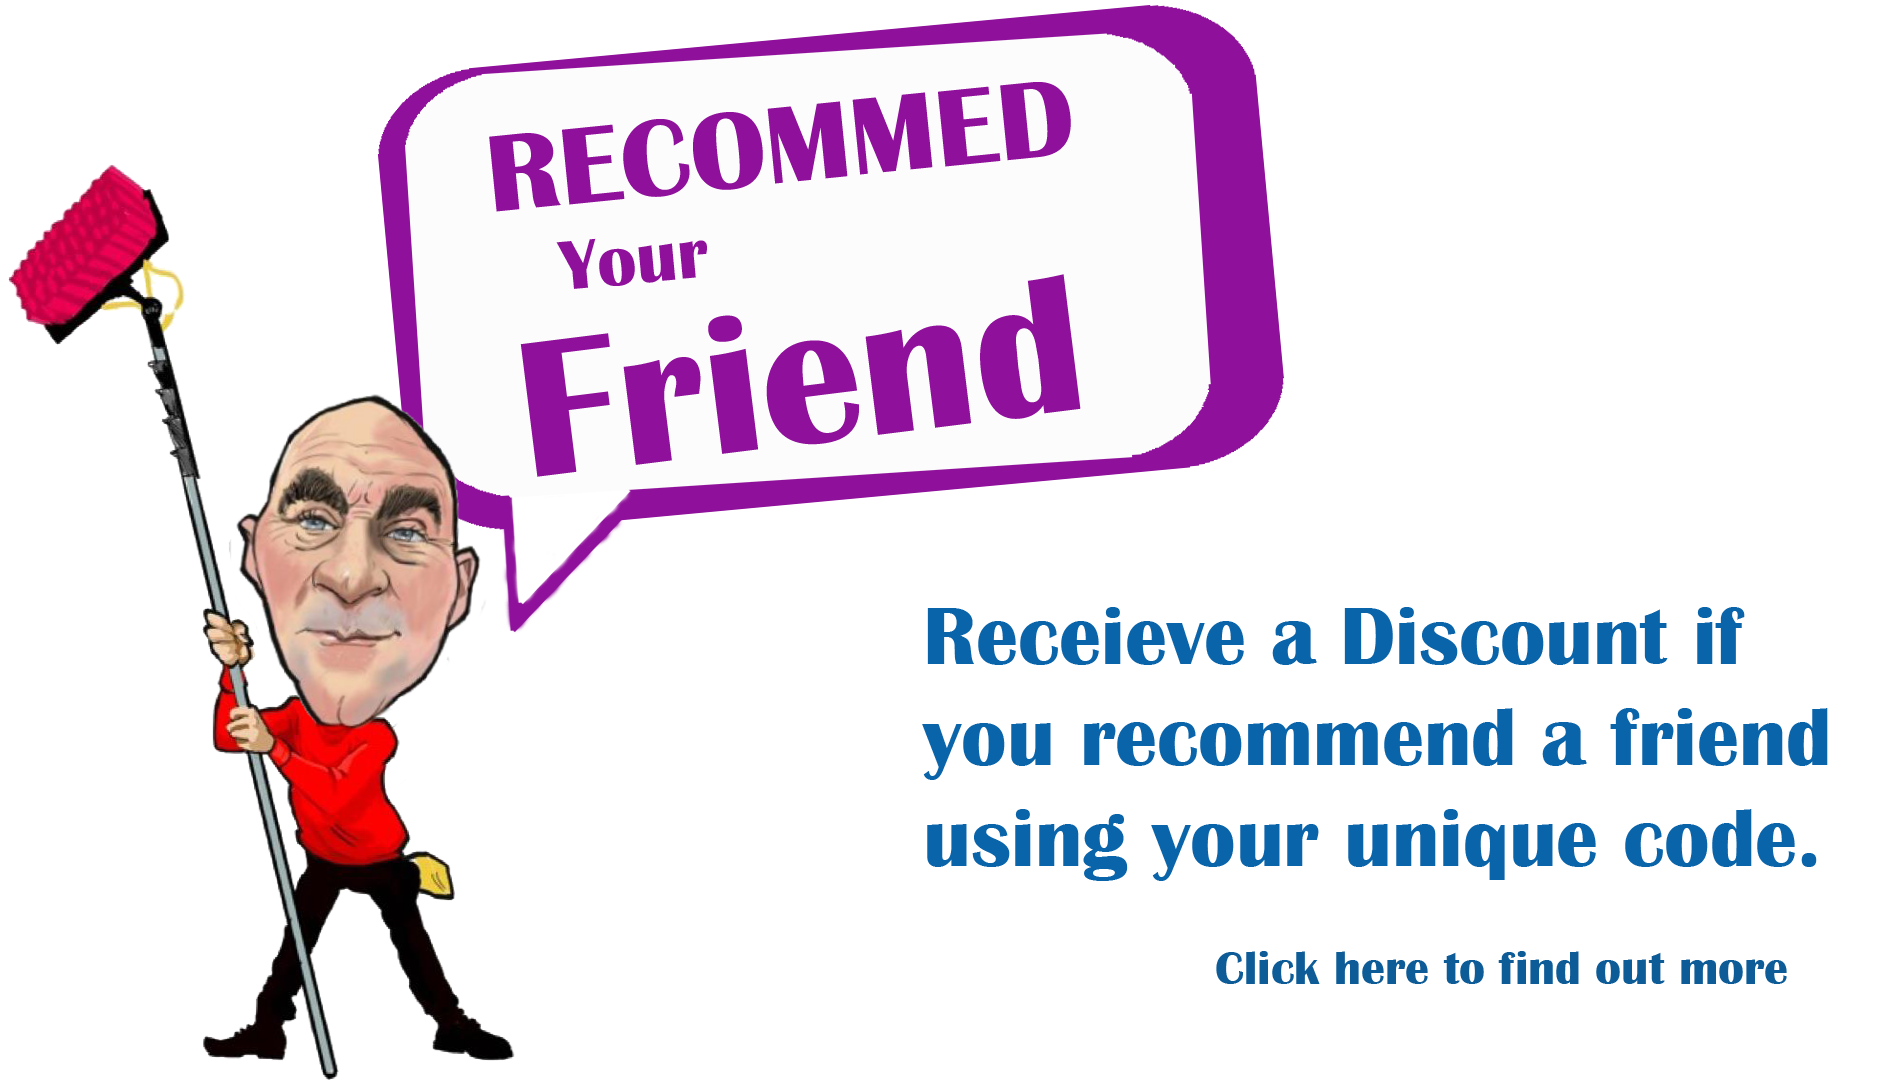 Recommend your friend